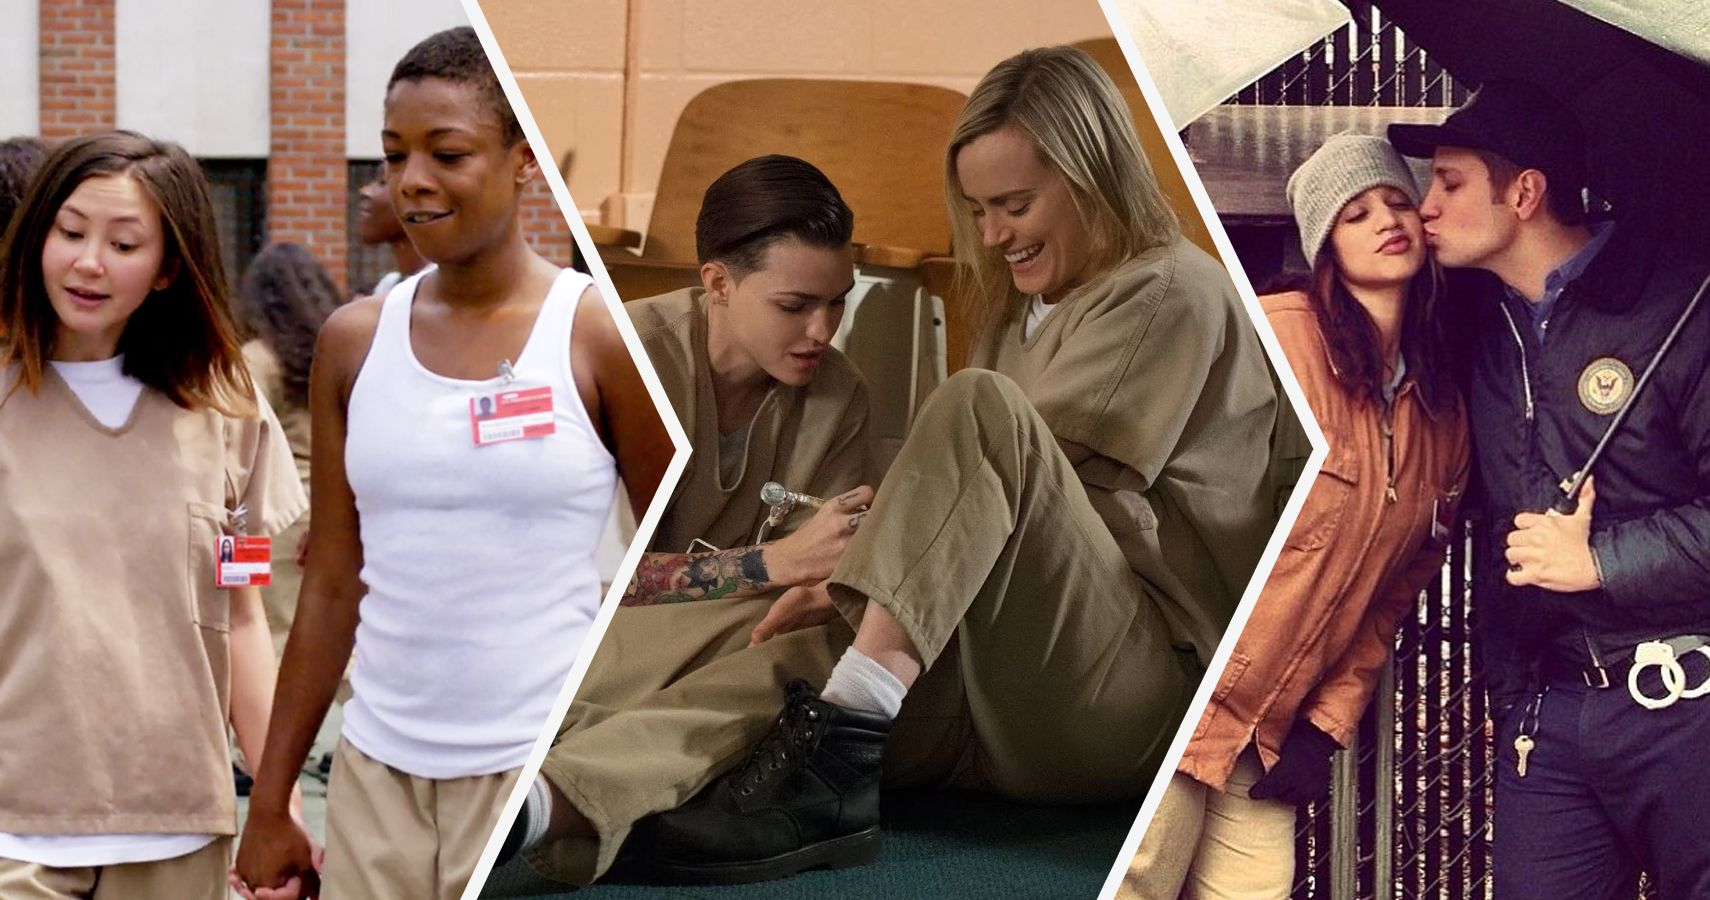 Oitnb poussey dating bennett